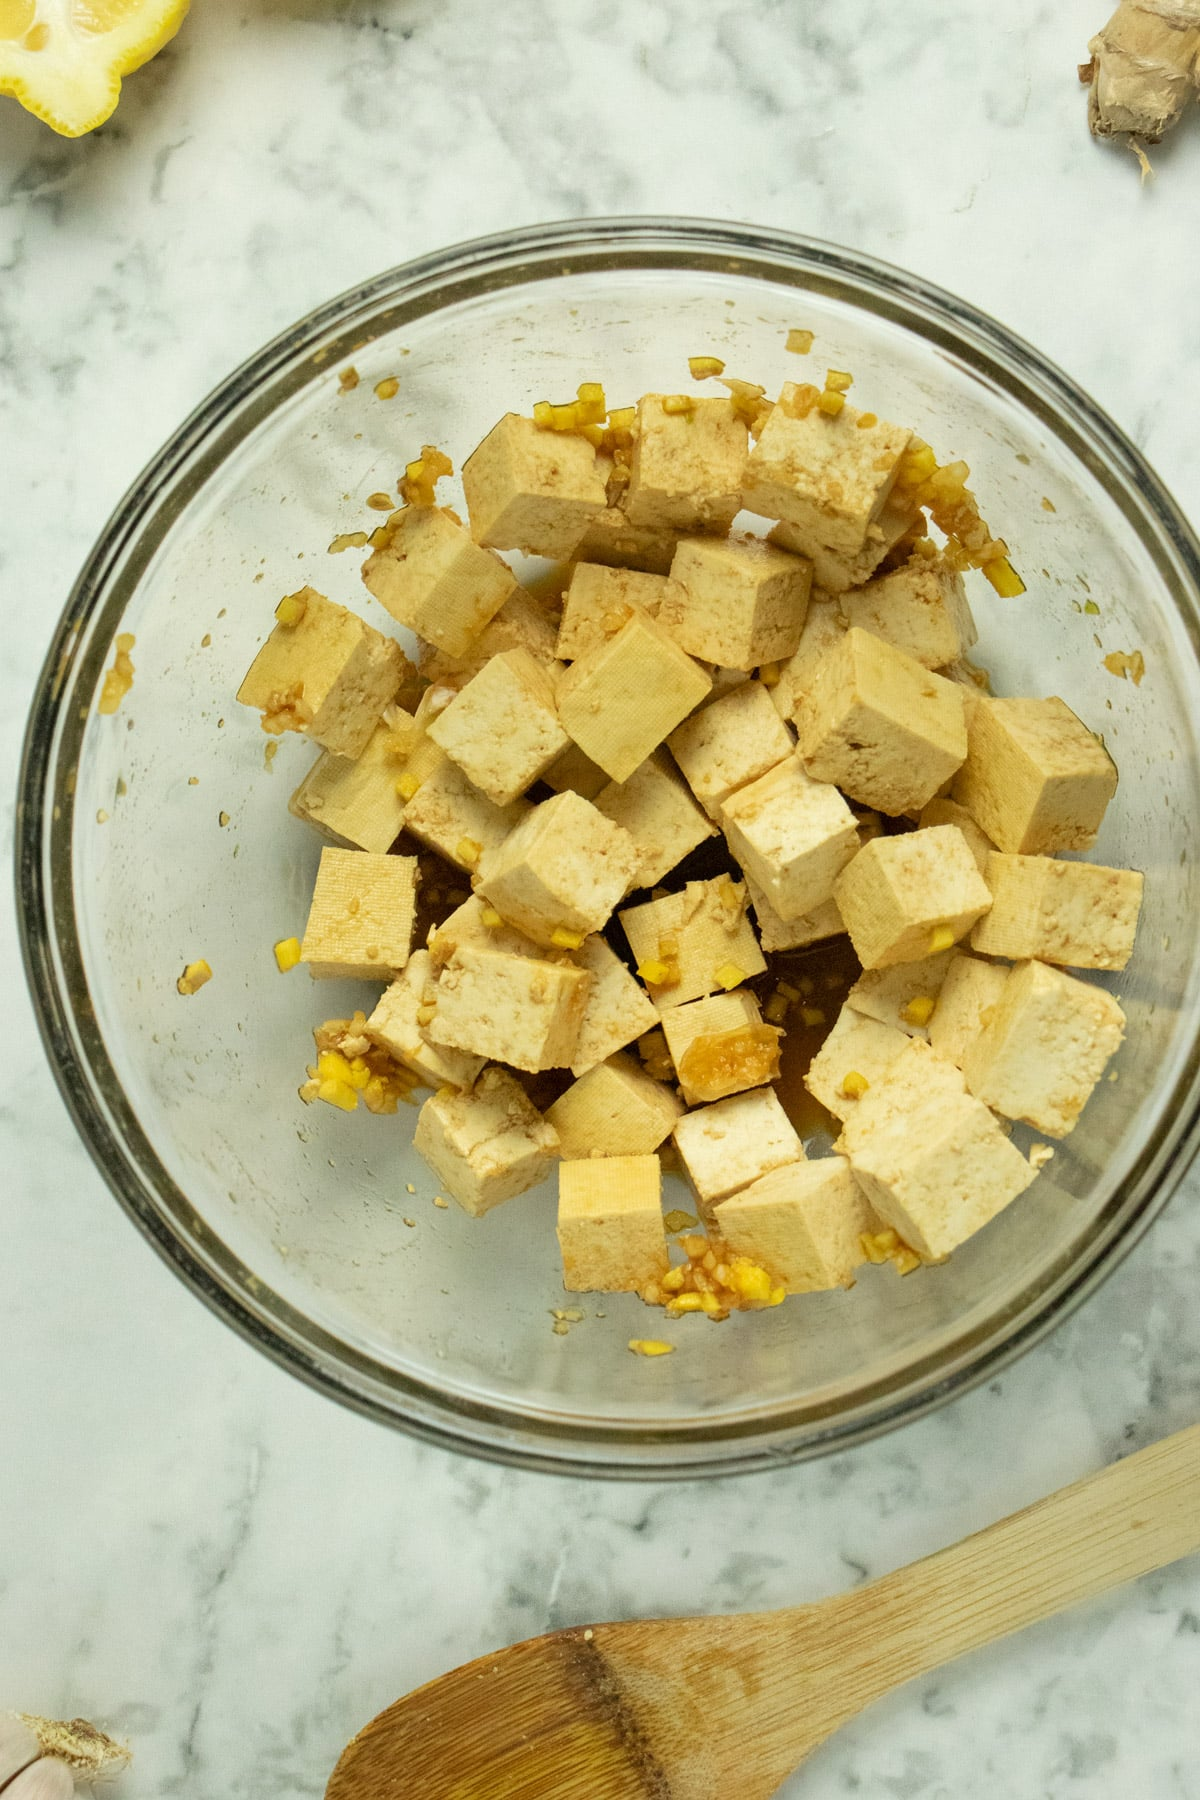 photo of cubed tofu marinating in garlic ginger, soy sauce, and lemon juice in a large bowl